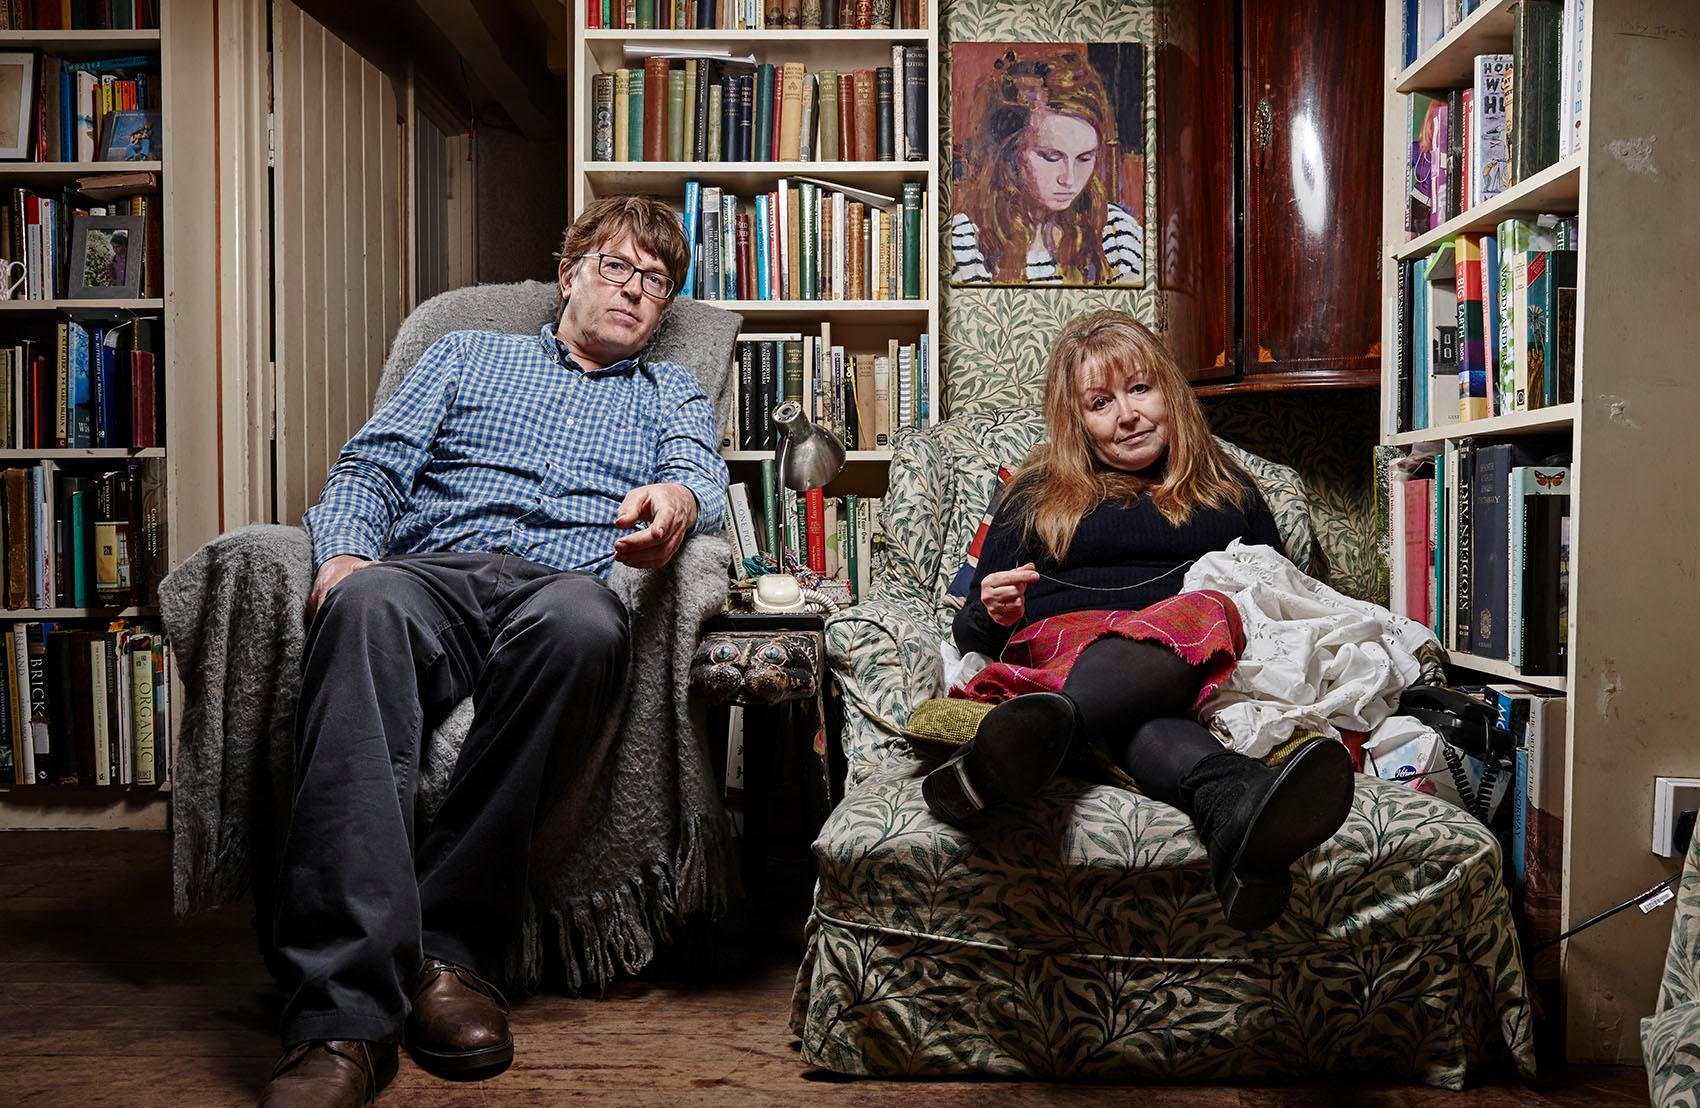 Who are Mary Killen and Giles Wood on Gogglebox? Meet the 'nutty' couple from Wiltshire who star in the Channel 4 show